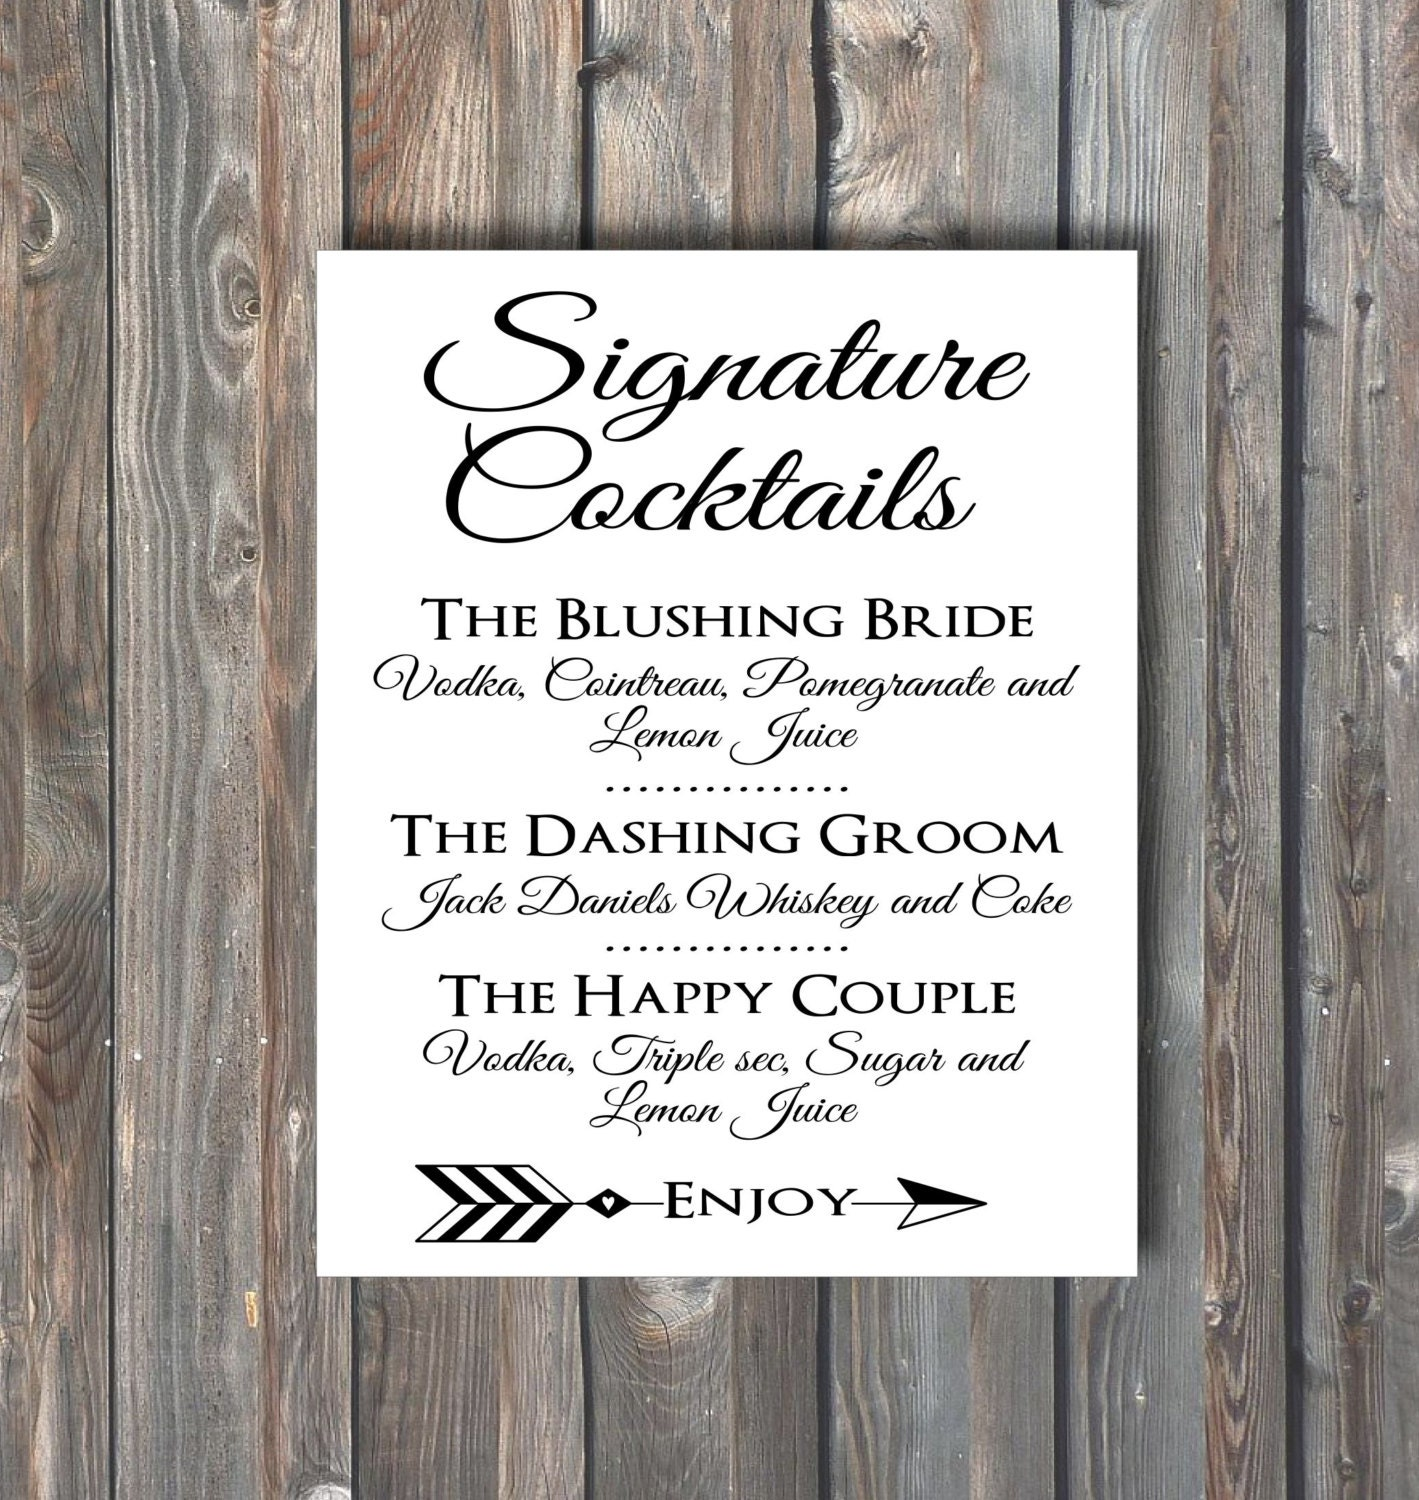 Drink for wedding 28 images printable drink menu card diy drink for wedding signature cocktail sign wedding drinks by happyfiestadesign junglespirit Gallery